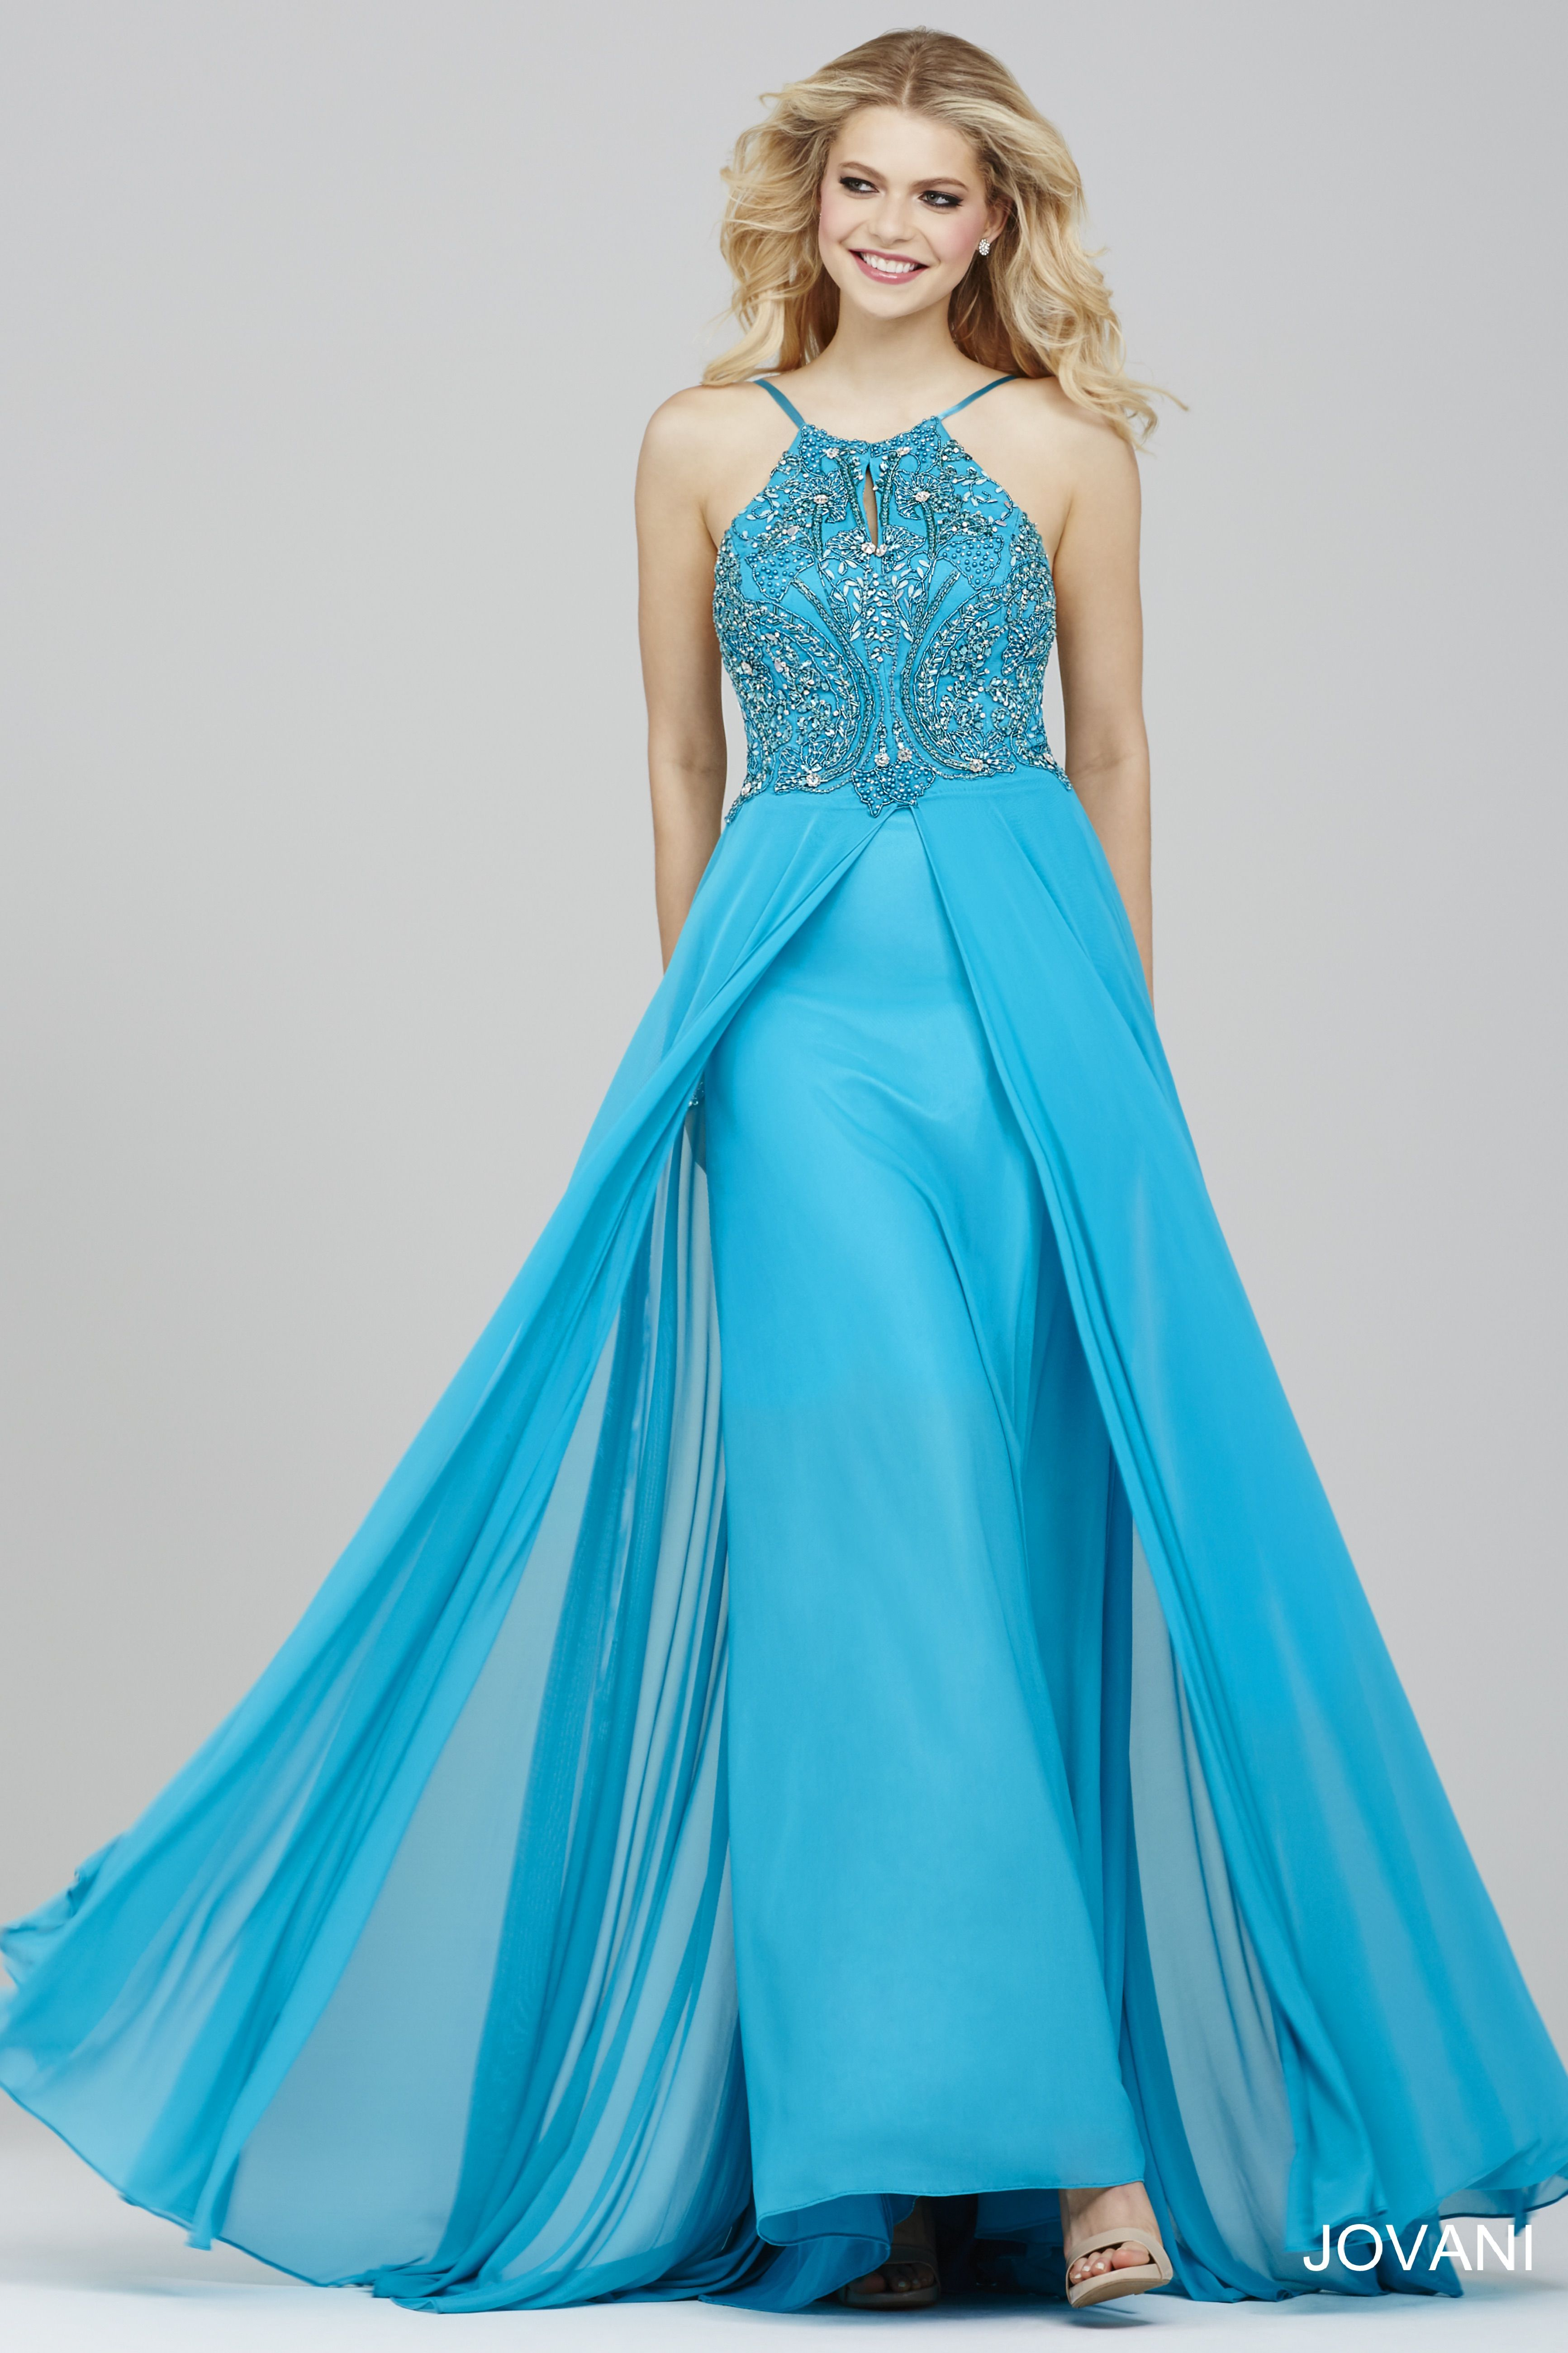 Excellent Prom Dresses Indianapolis Photos - Wedding Ideas ...